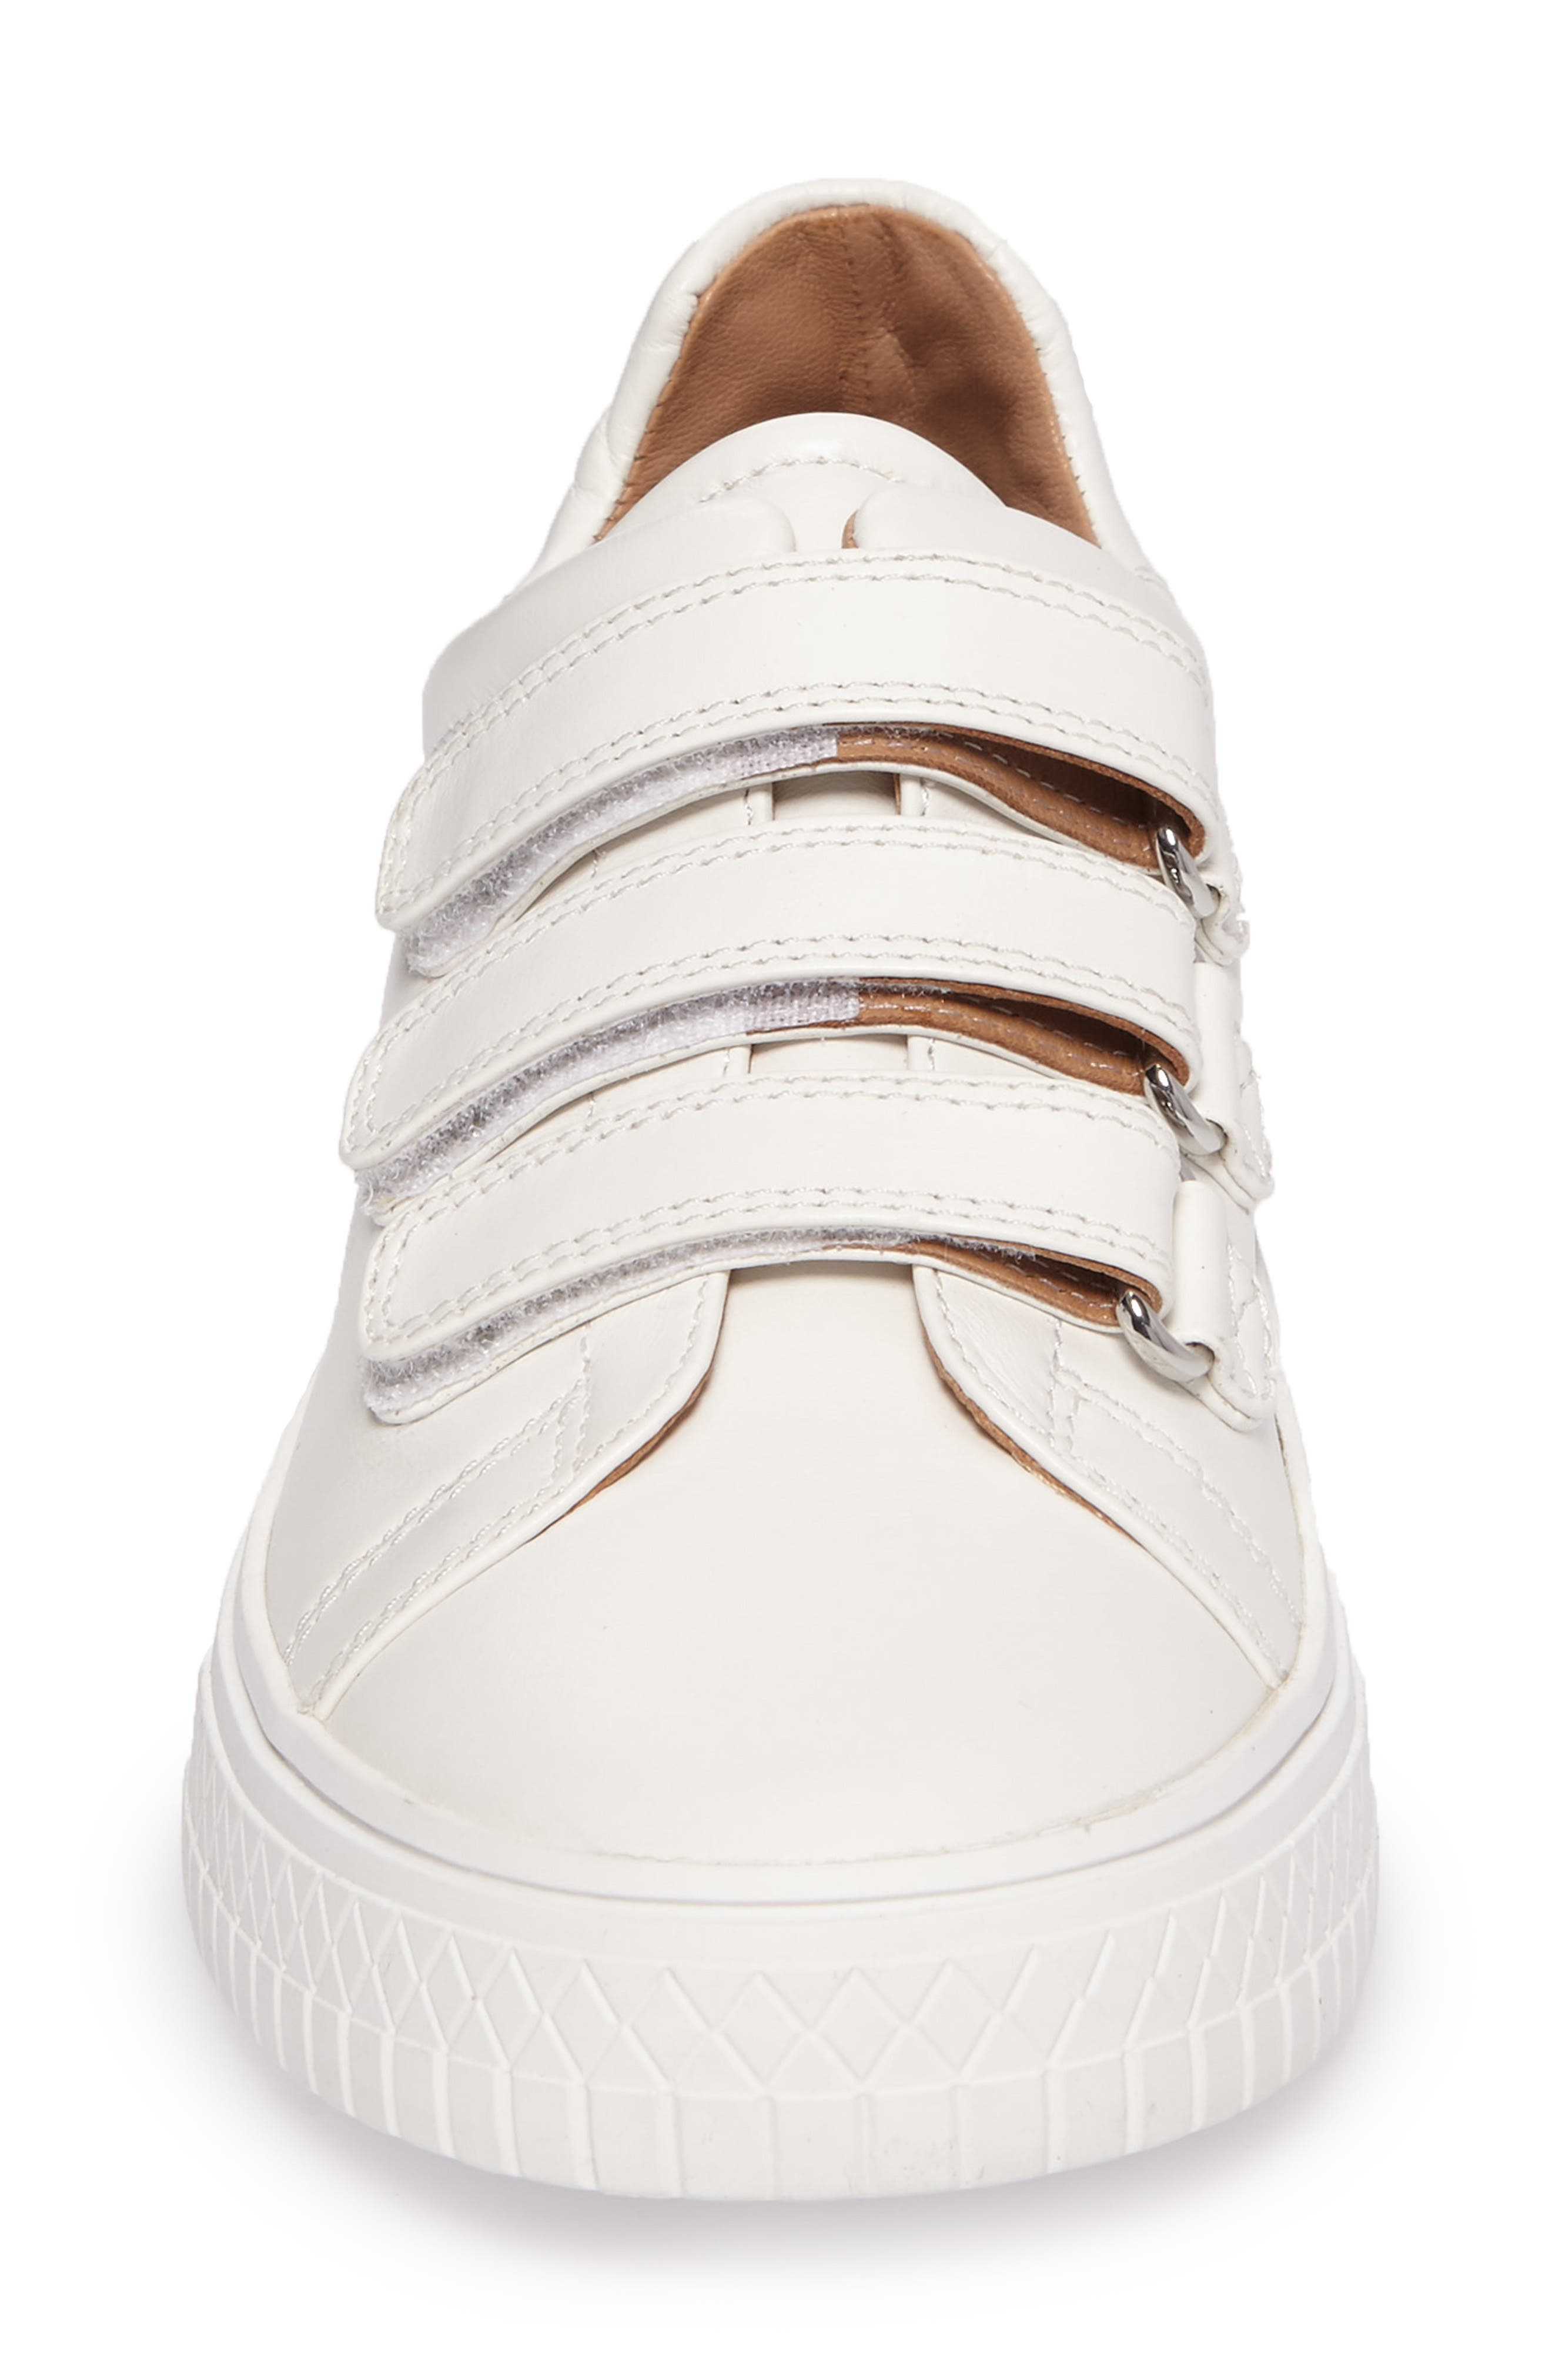 Grace Sneaker,                             Alternate thumbnail 4, color,                             White Leather